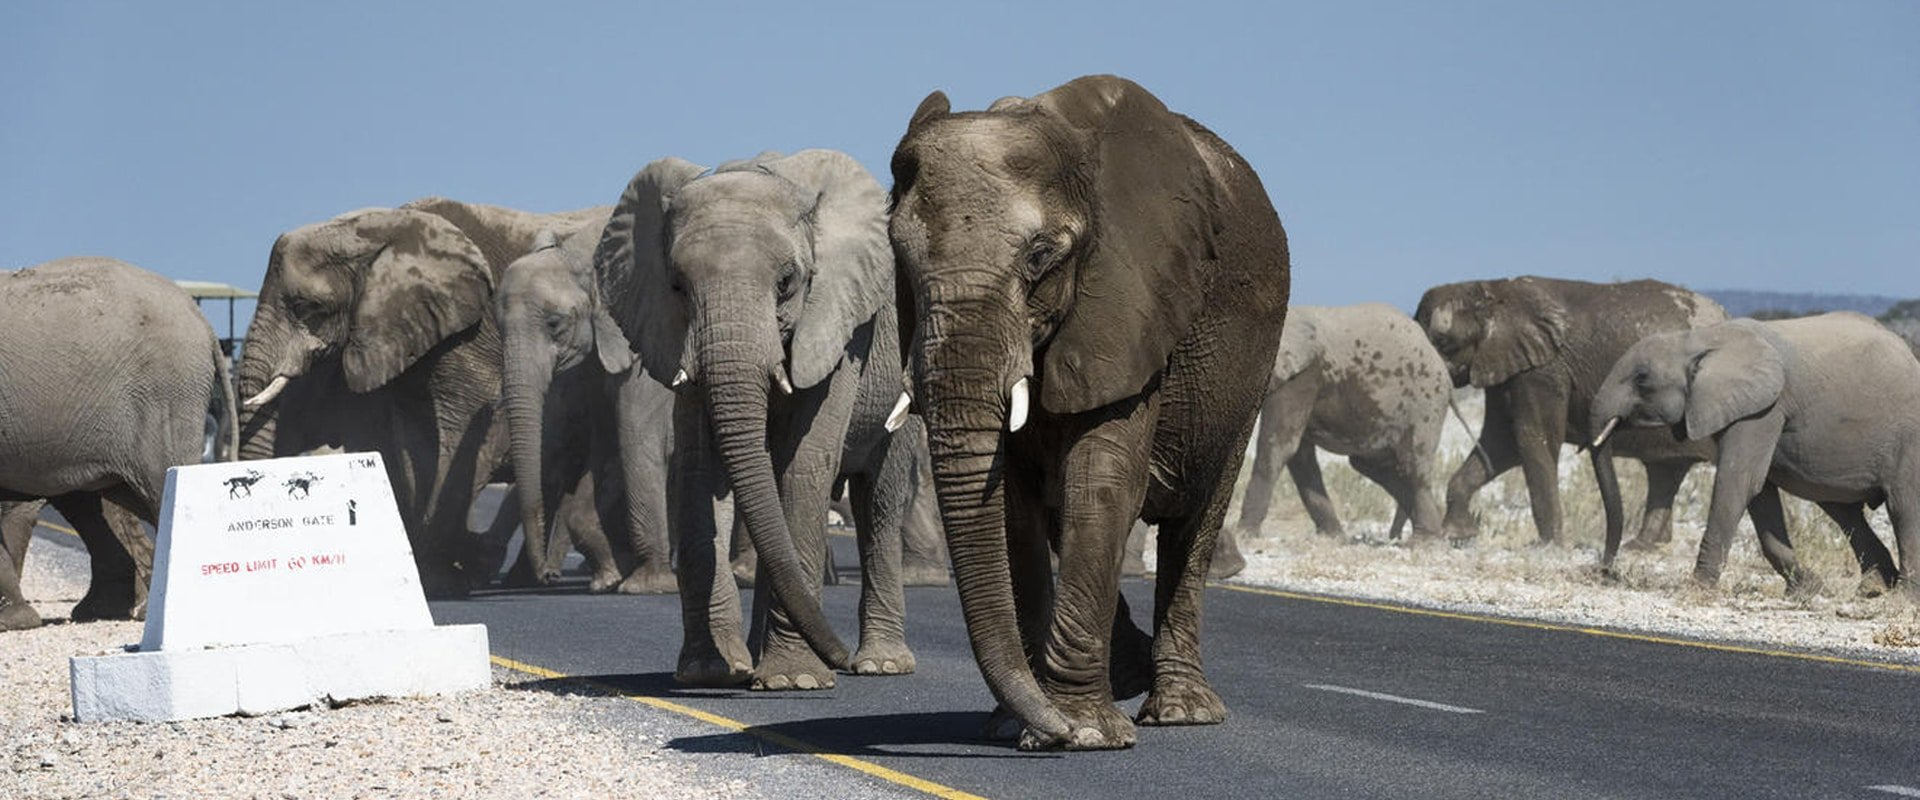 Drive through the Etosha National Park